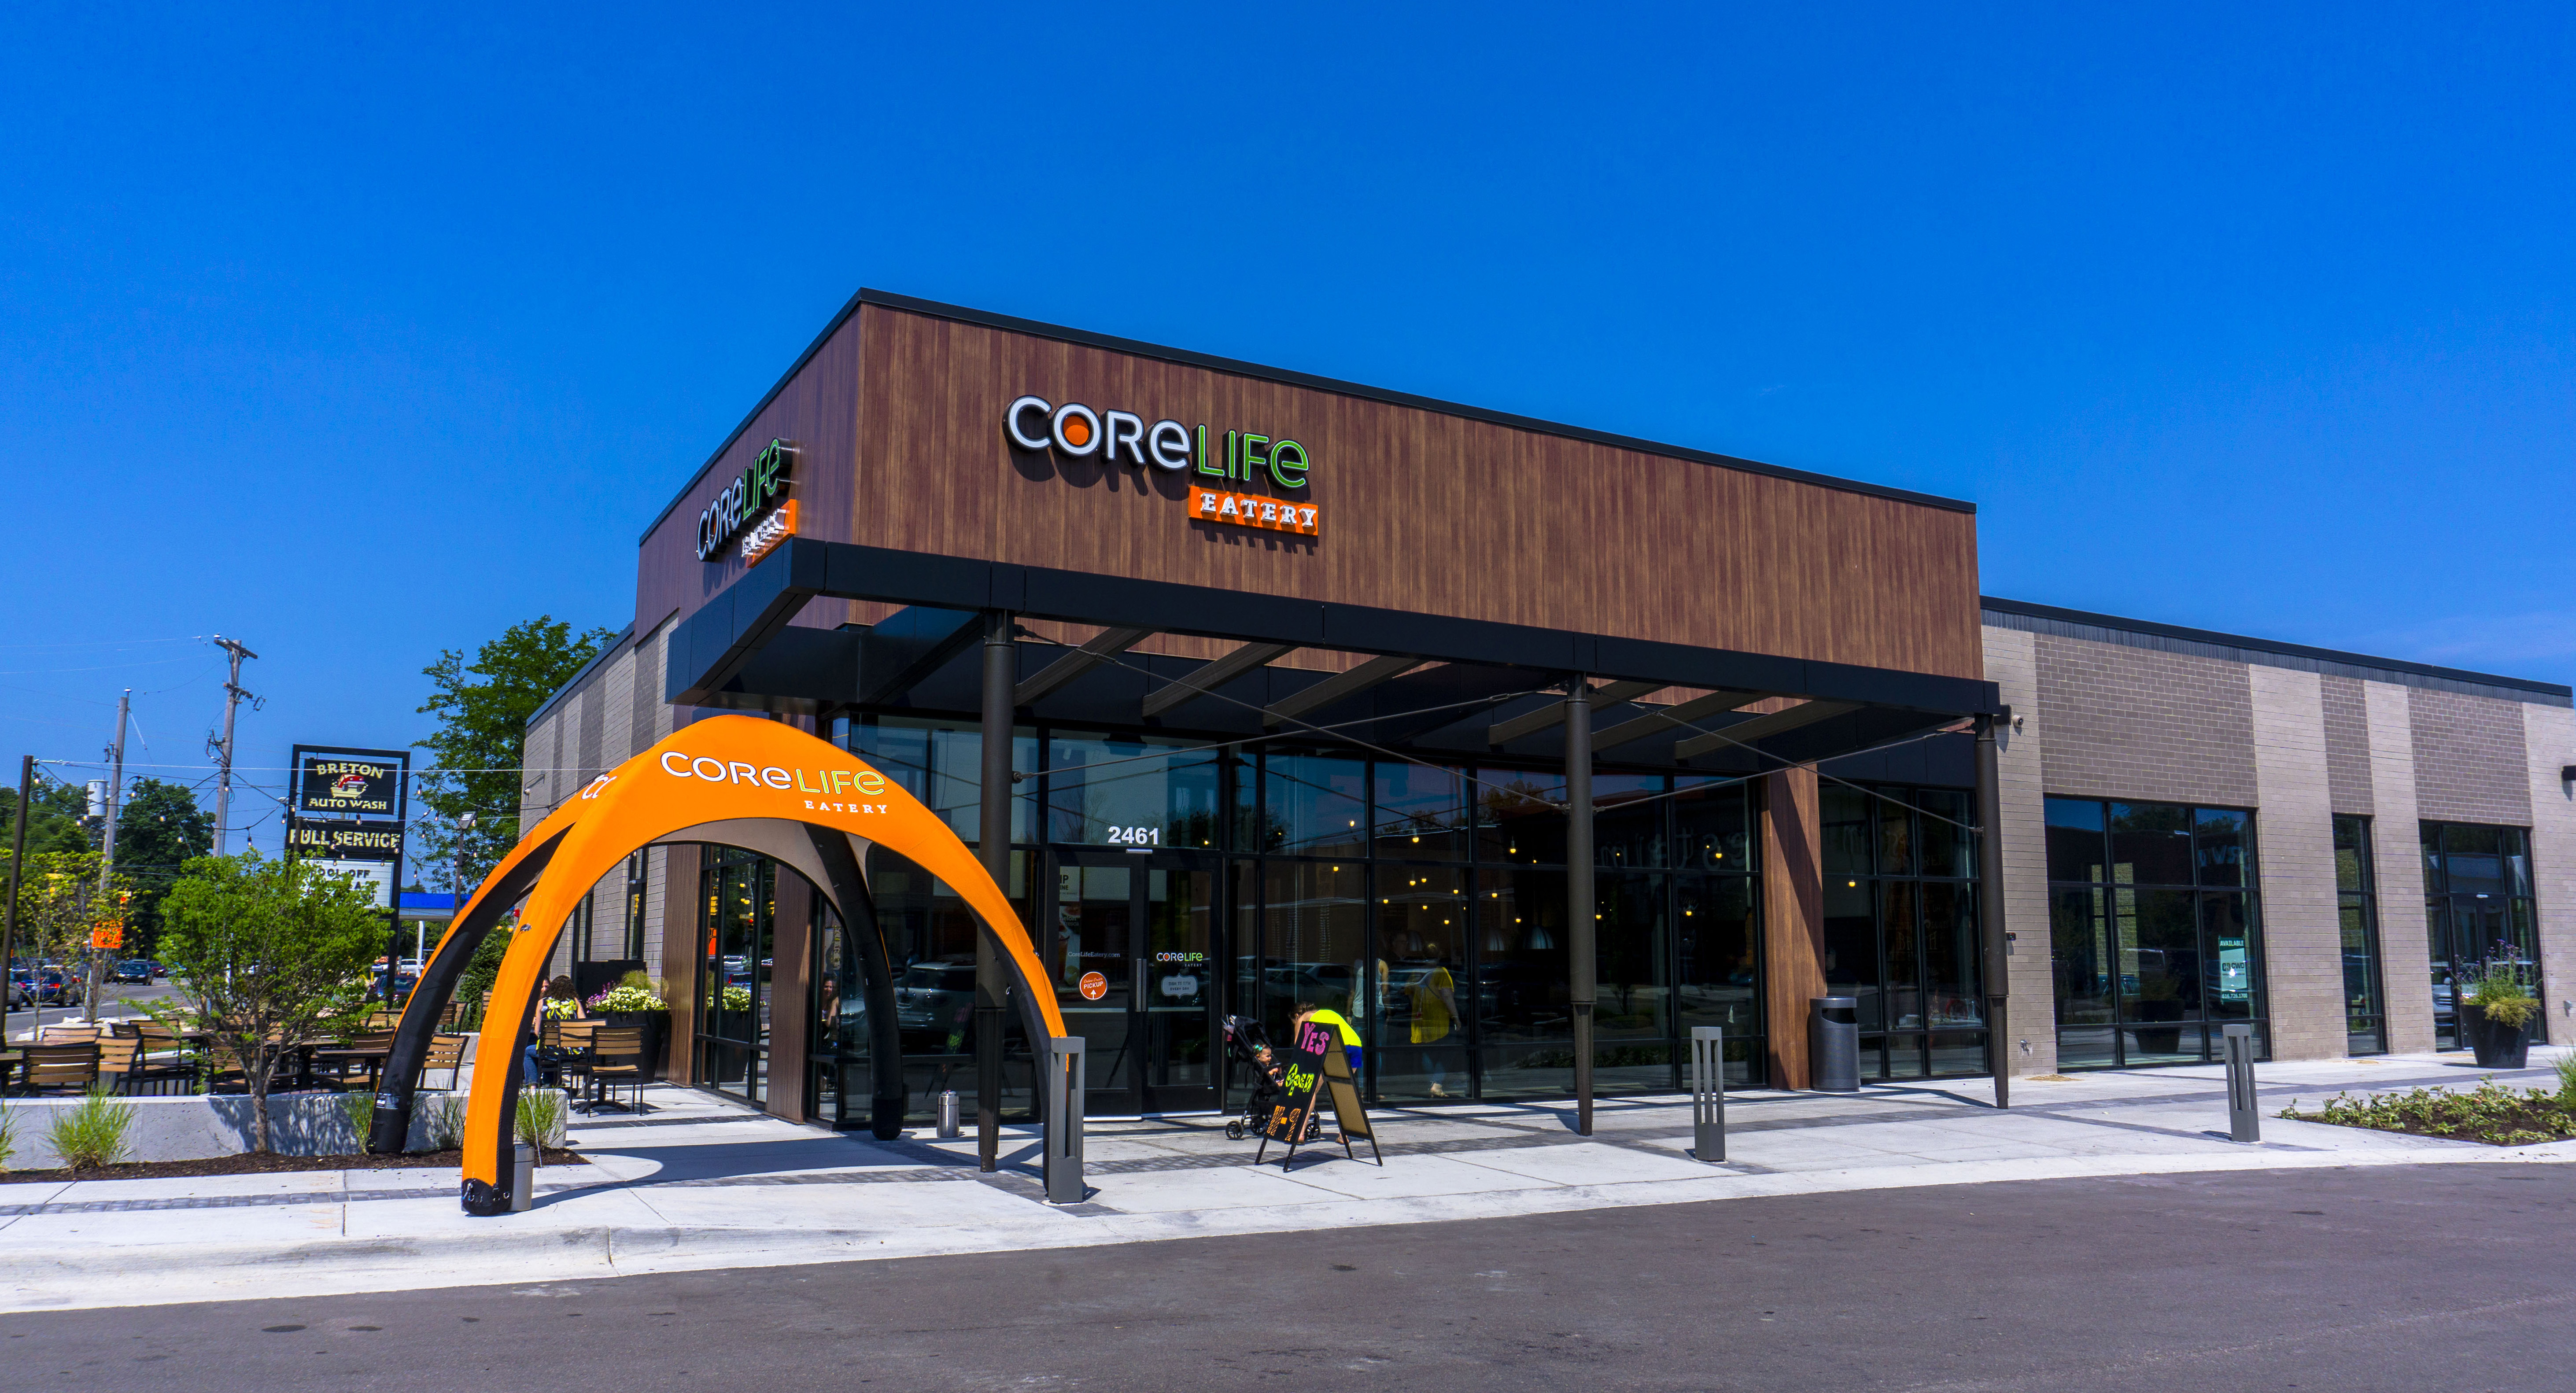 CoreLife Eatery's grand opening at Breton Village in Grand Rapids